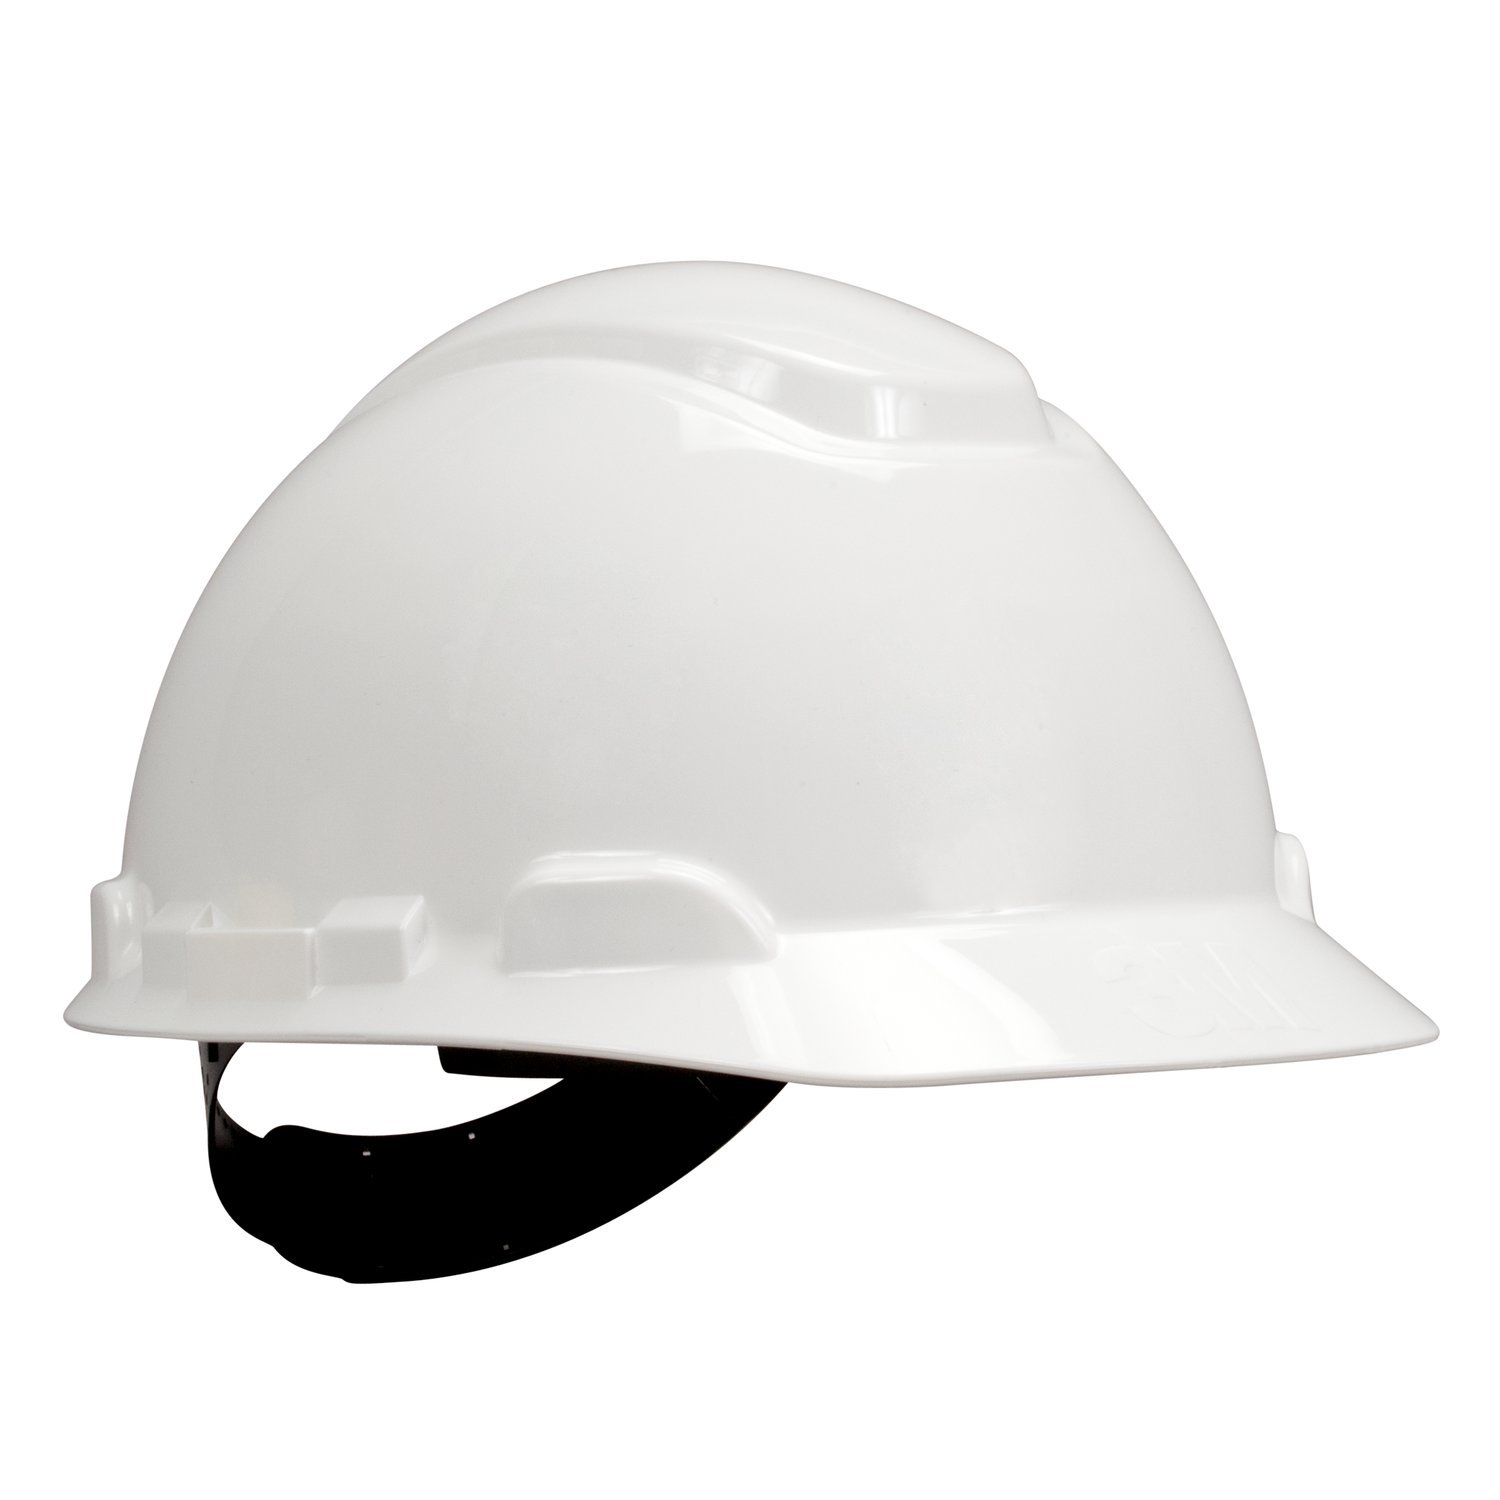 3M 10078371641877 H-701P White Hard Hat with 4-Point Pin Lock Suspension, White: Industrial & Scientific